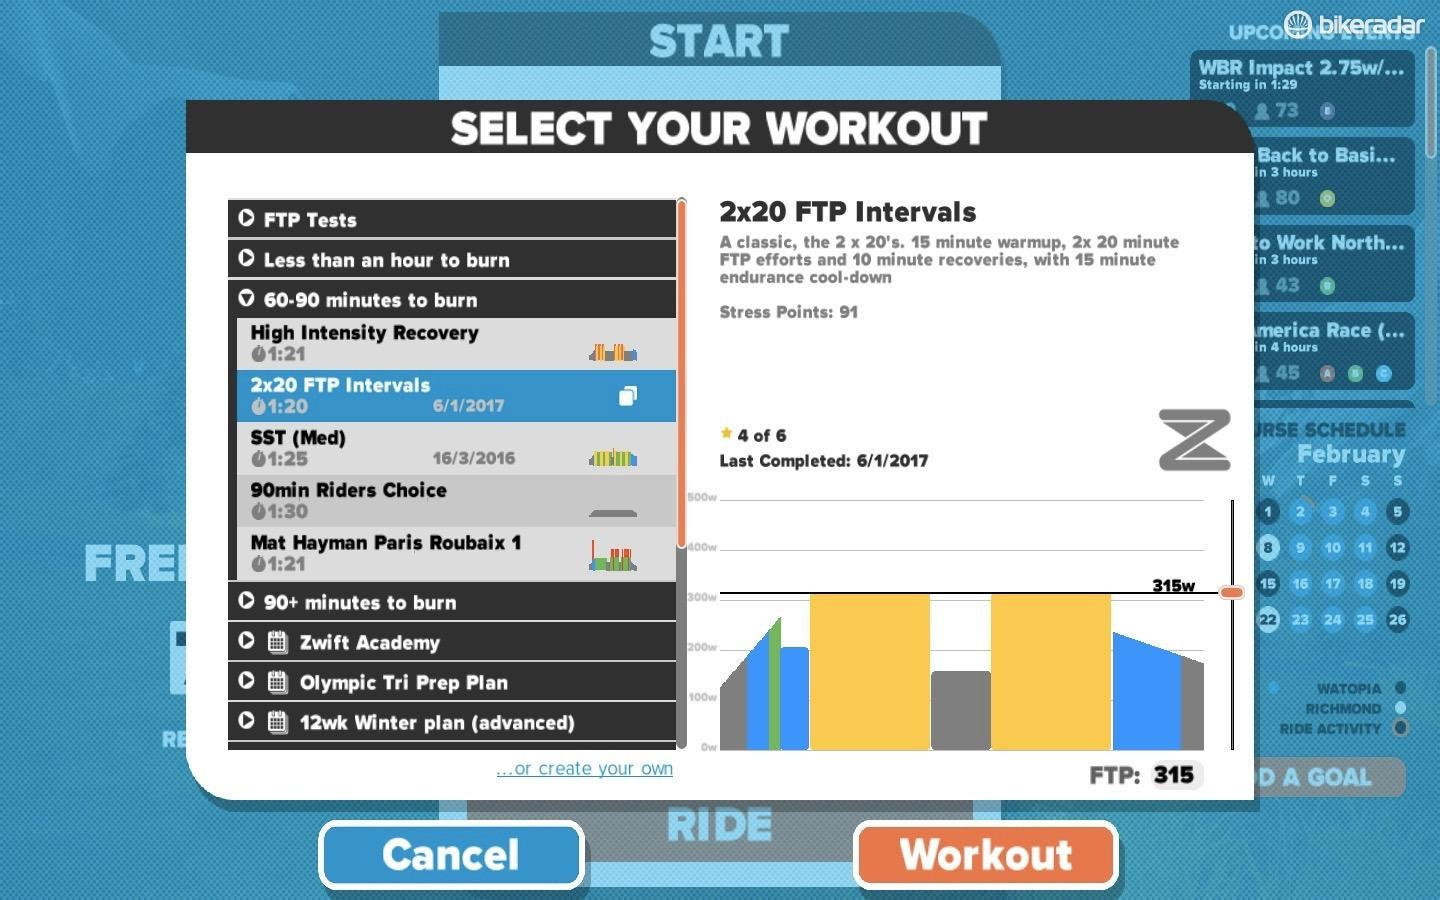 You can do workouts at random, or as part of a plan